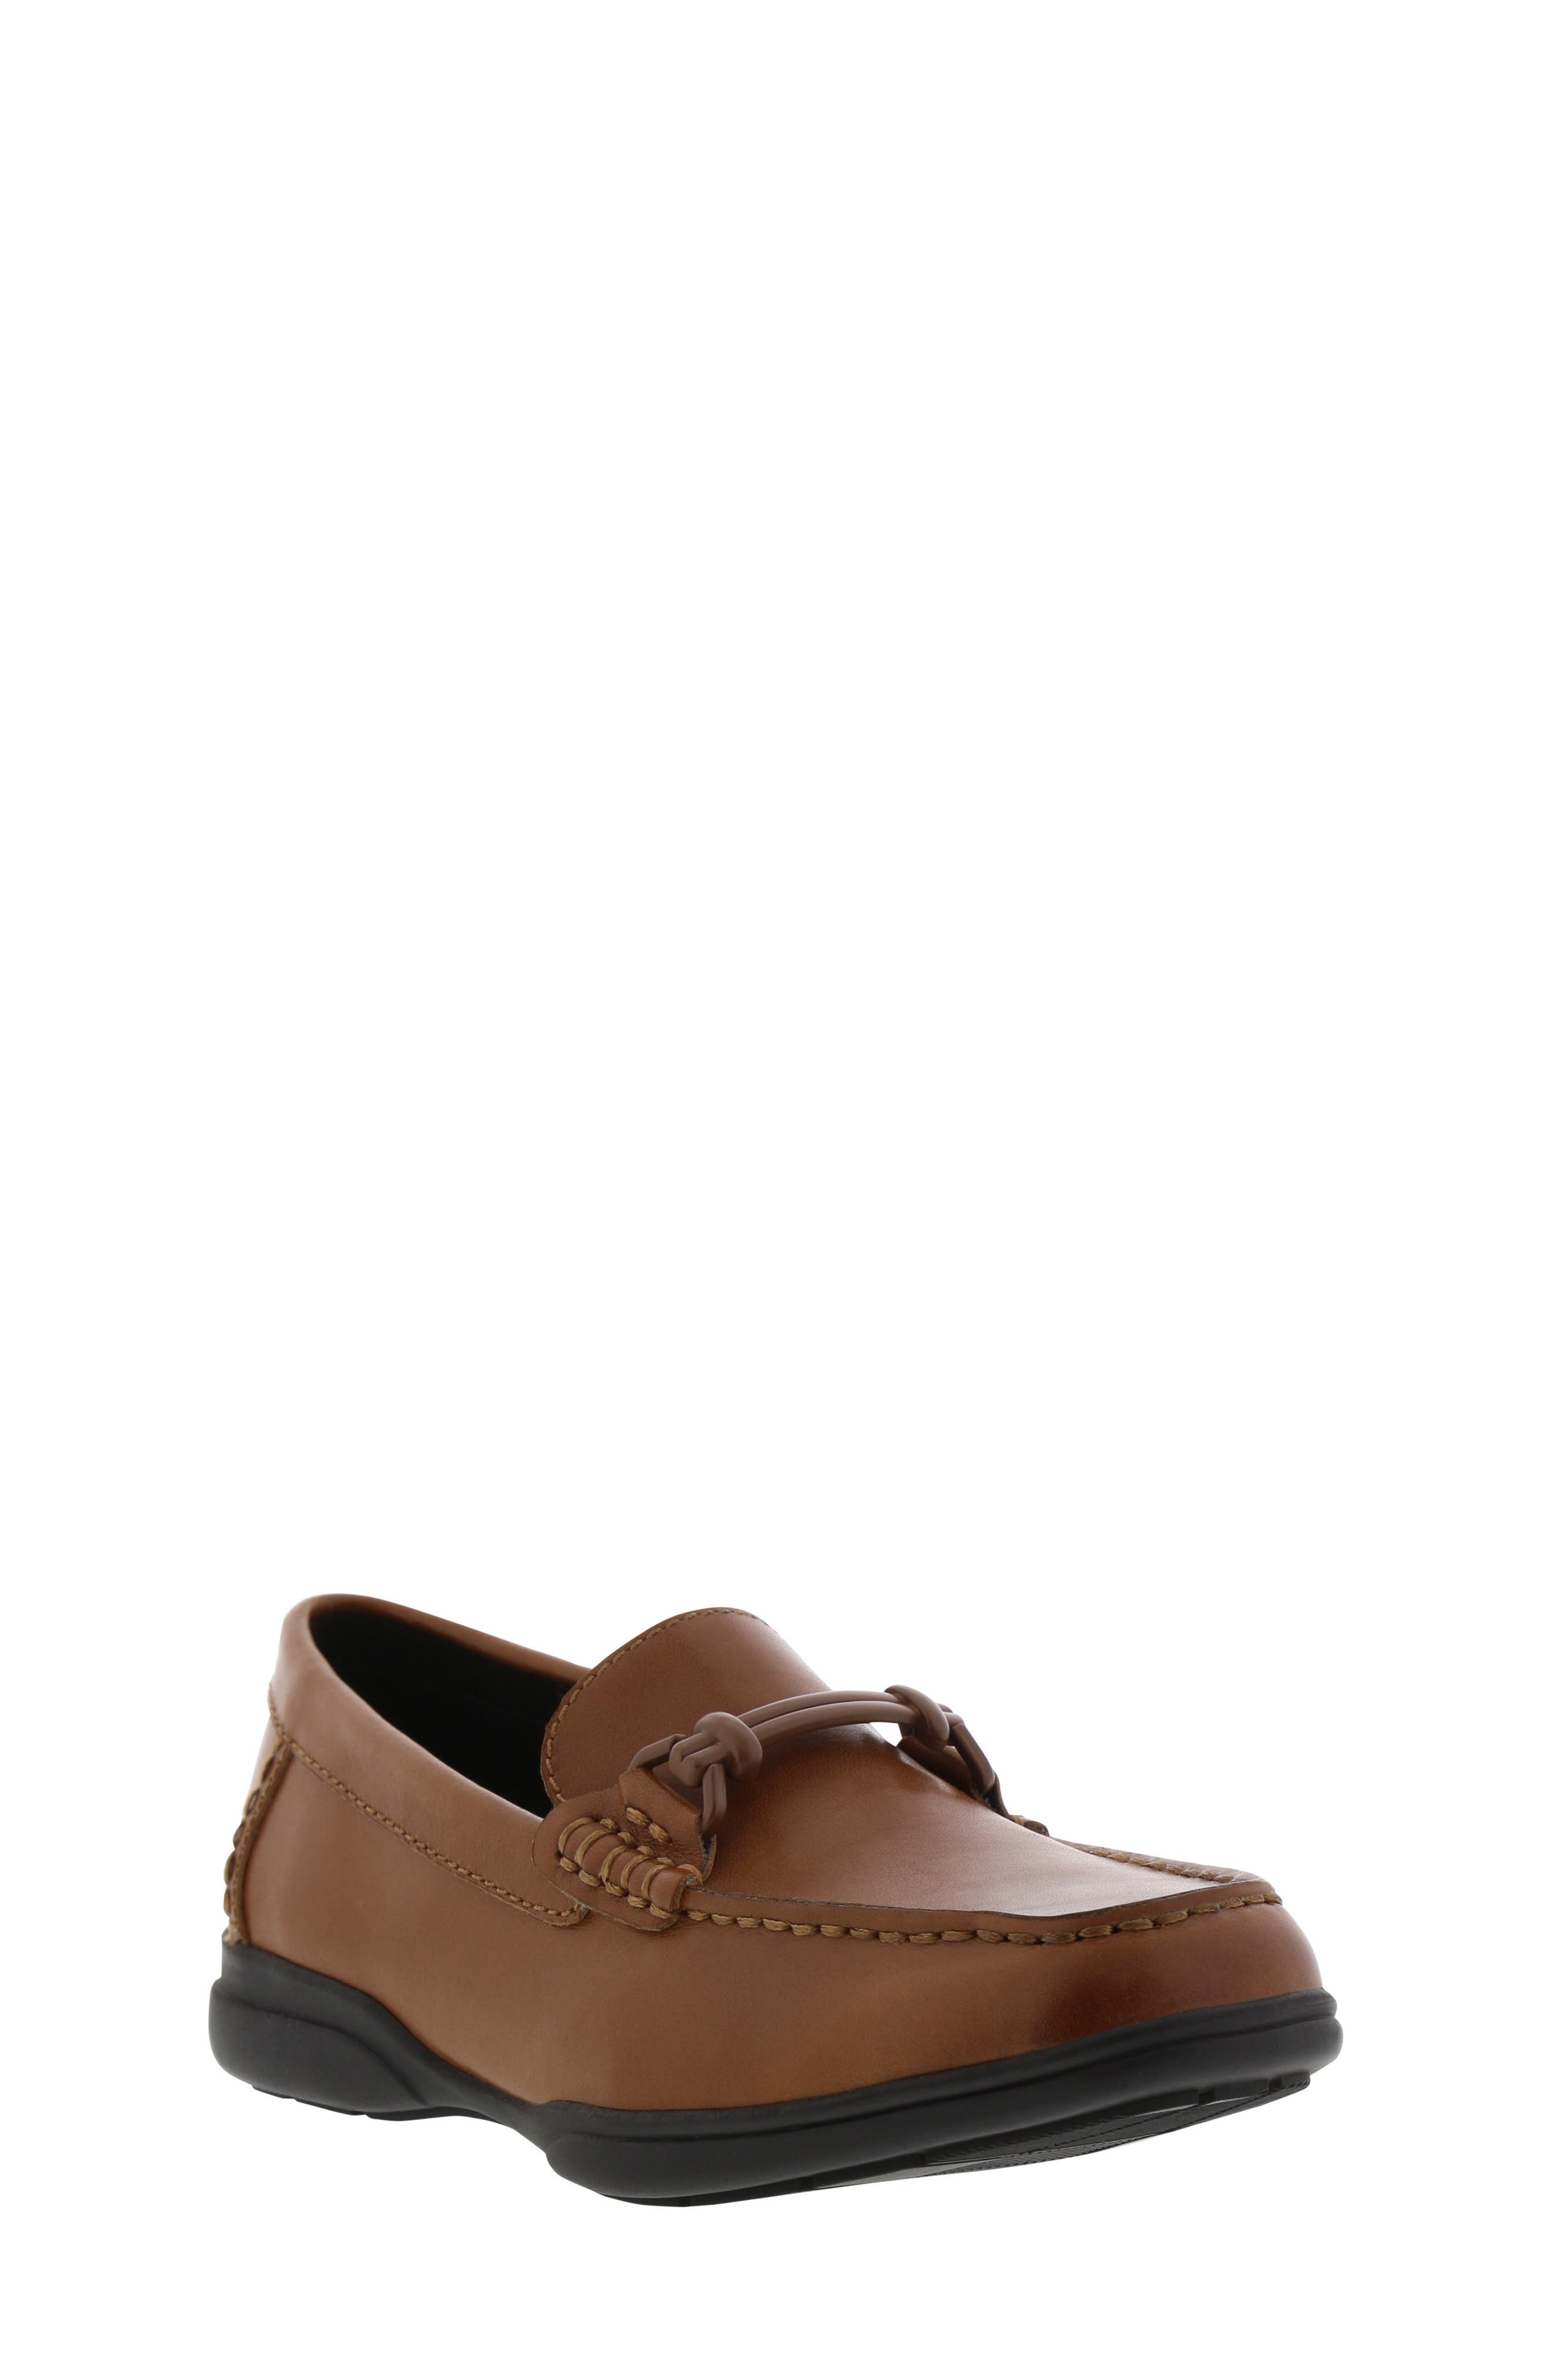 Joe Mason Driving Loafer,                         Main,                         color, BURNT WHISKEY